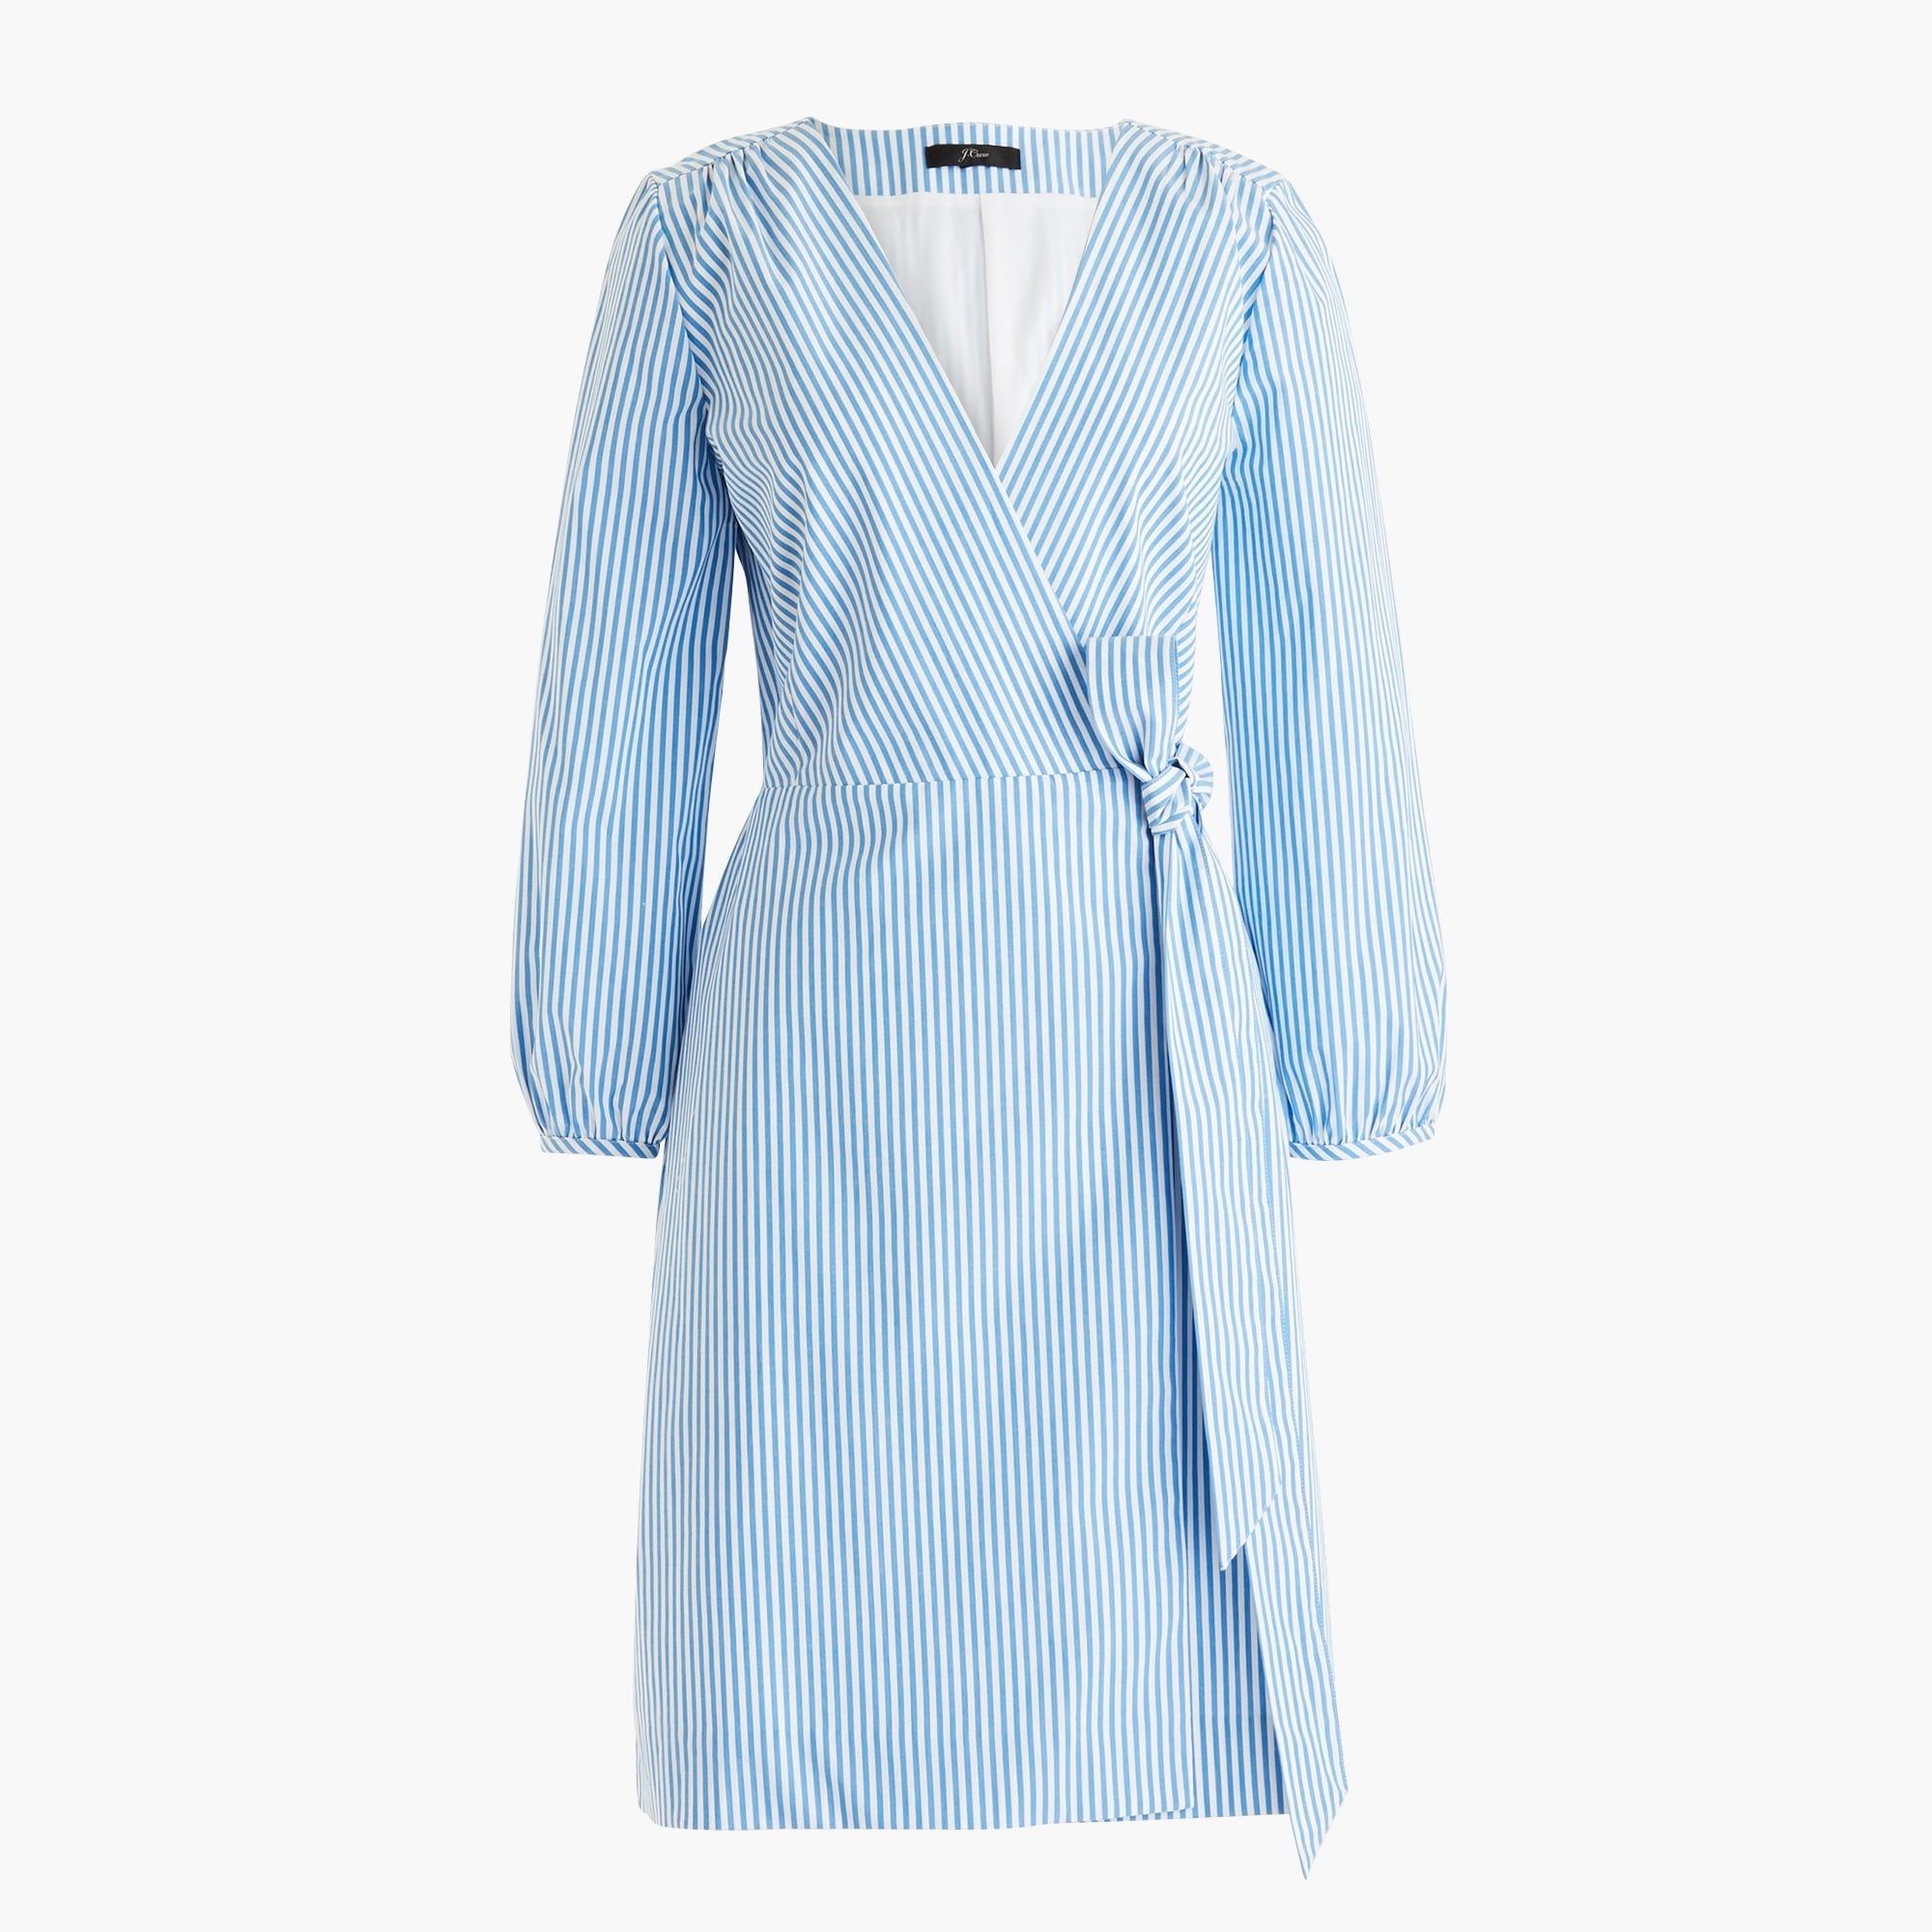 Image 6 for Wrap dress in striped cotton poplin